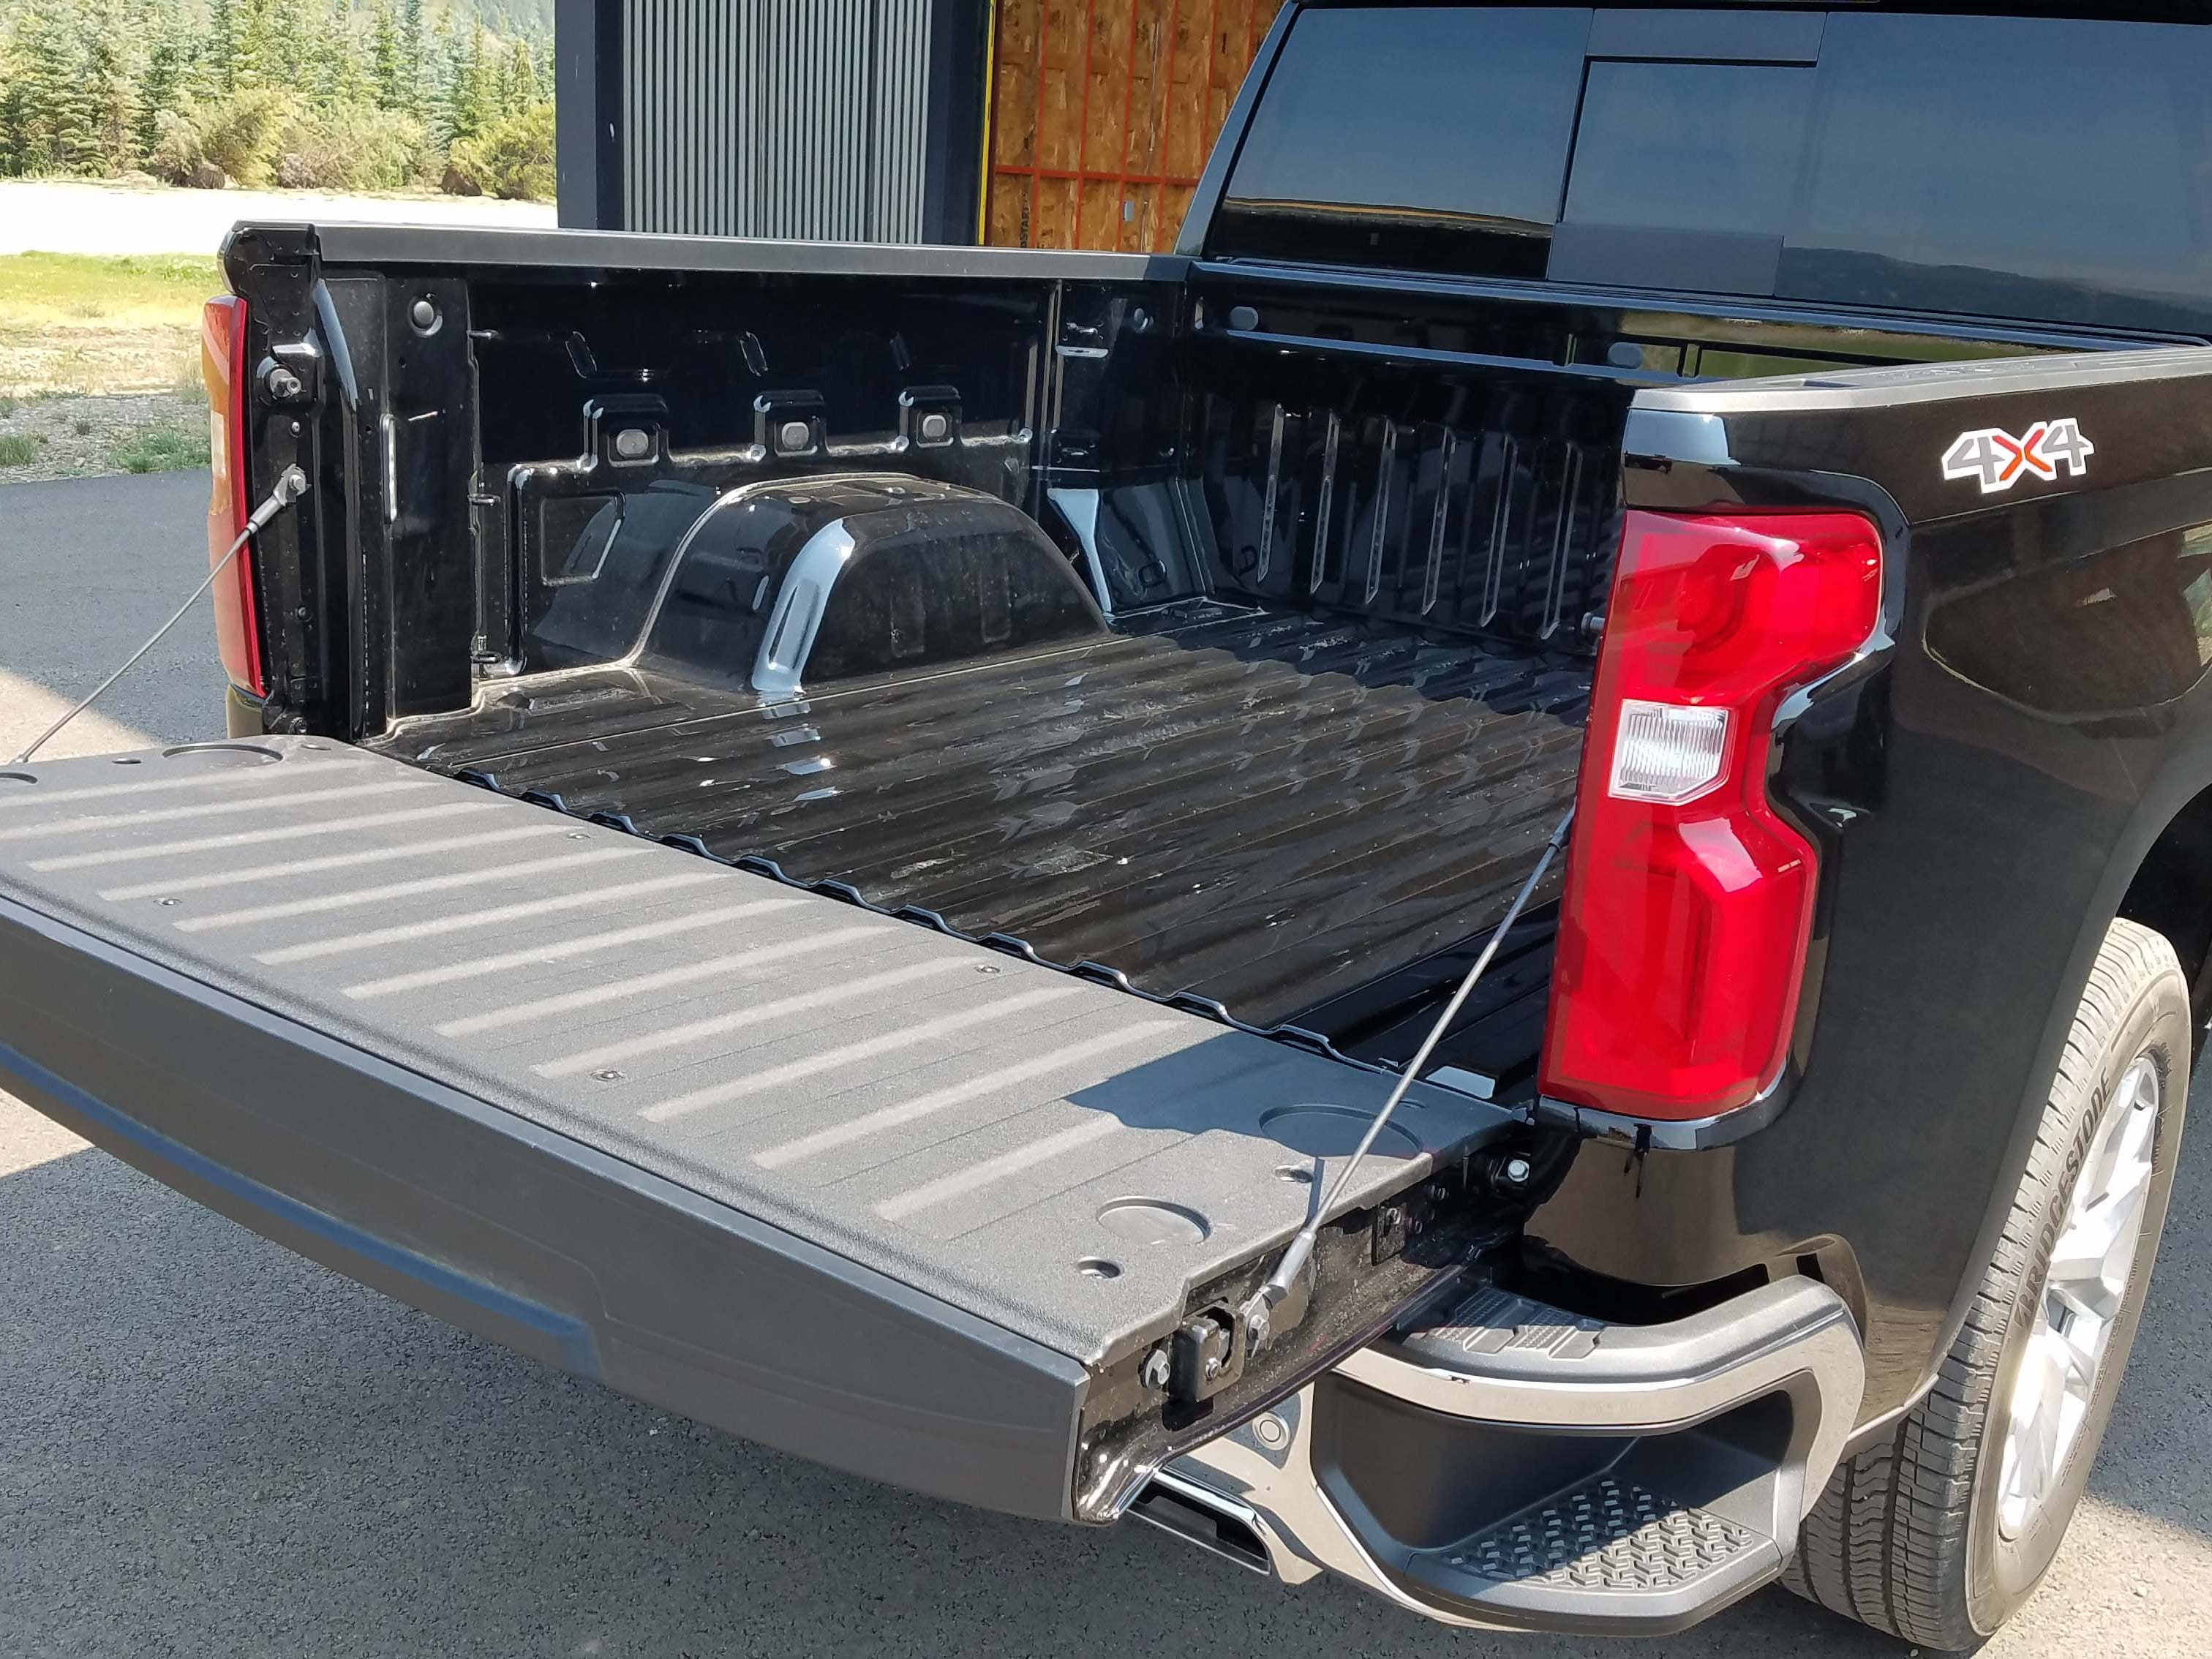 The 2019 Chevy Silverado offers the first automatic tailgate in class — it can be raised and lowered remotely, or with the touch of a button. The standard box is also the largest in its class and is made with high-strength, rolled steel.